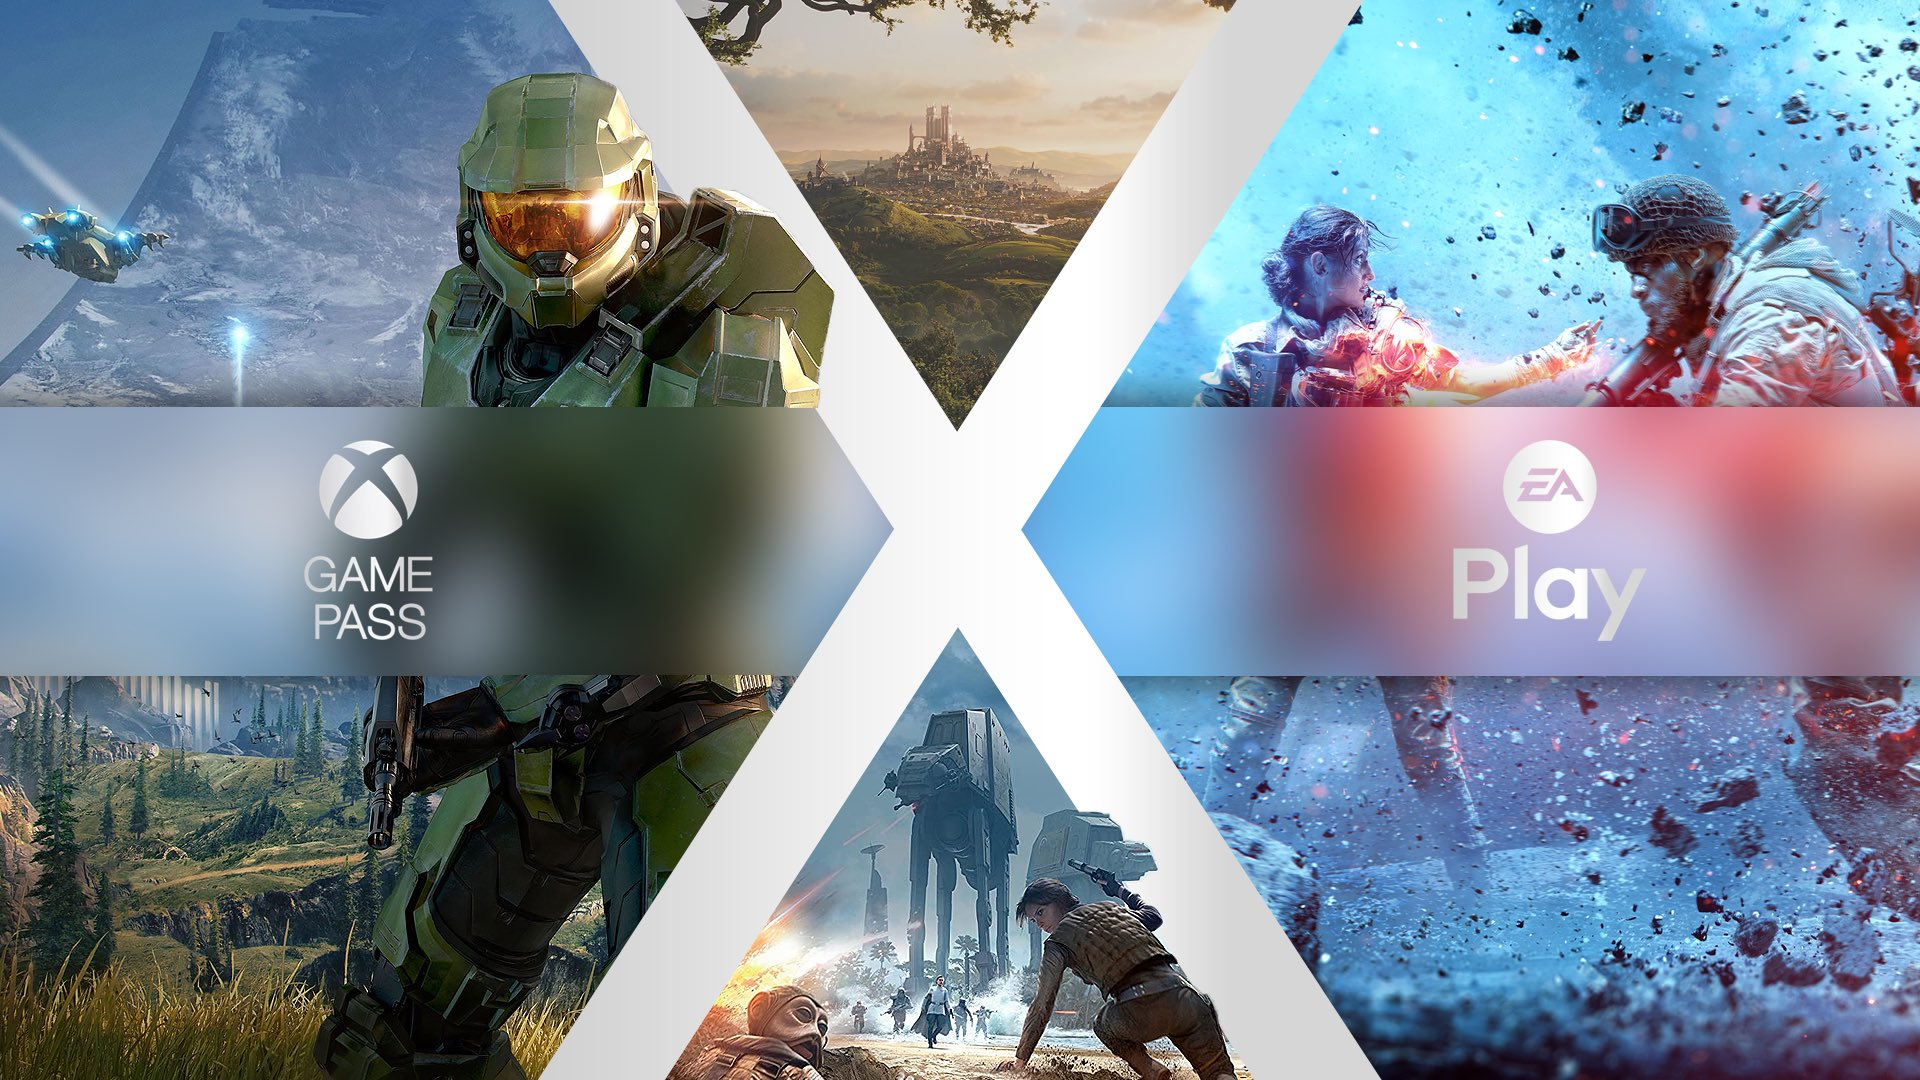 EA Play Xbox Game Pass Ultimate Xbox Series X